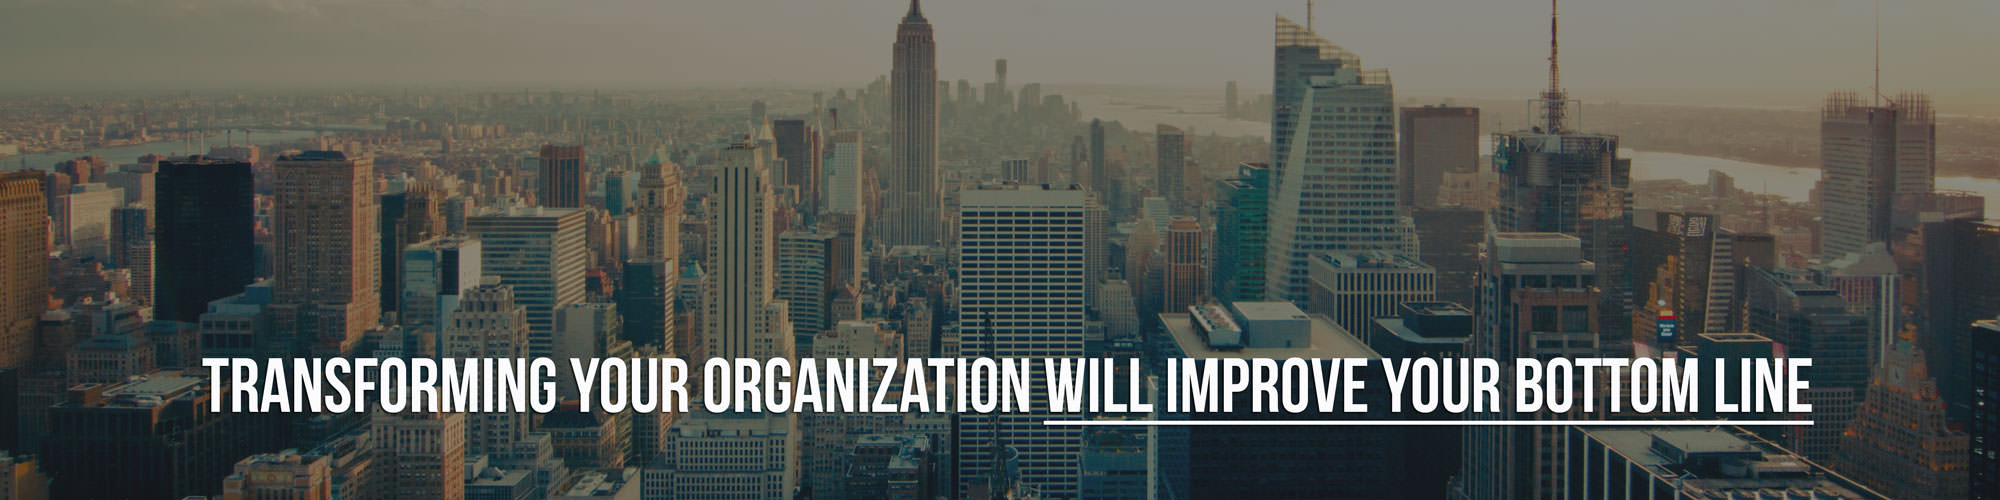 Transforming your organization will improve your bottom line